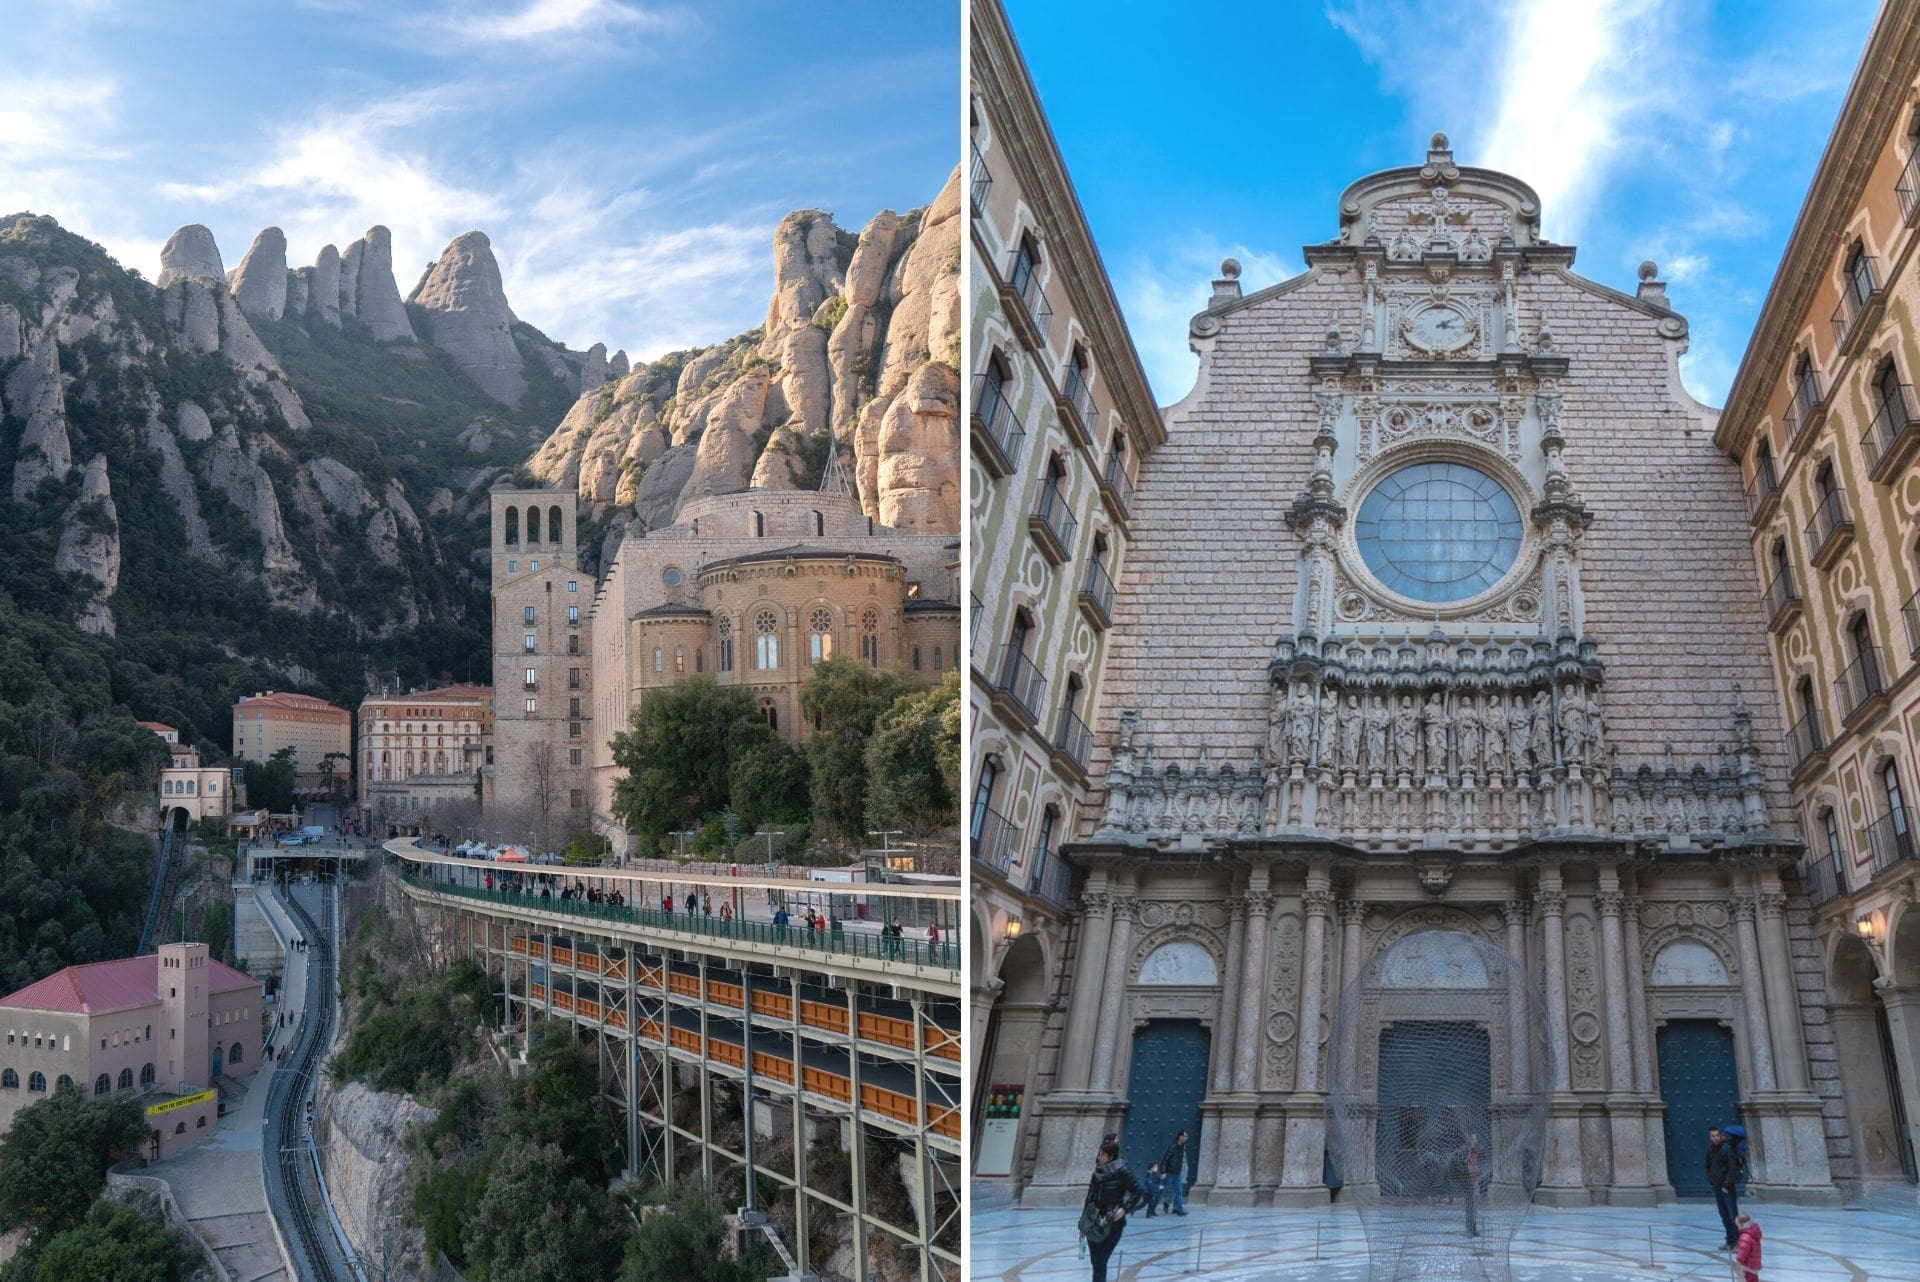 town-up-some-mountains-montserrat-monestary-basilica-up-montserrat-mountain-on-a-summers-day